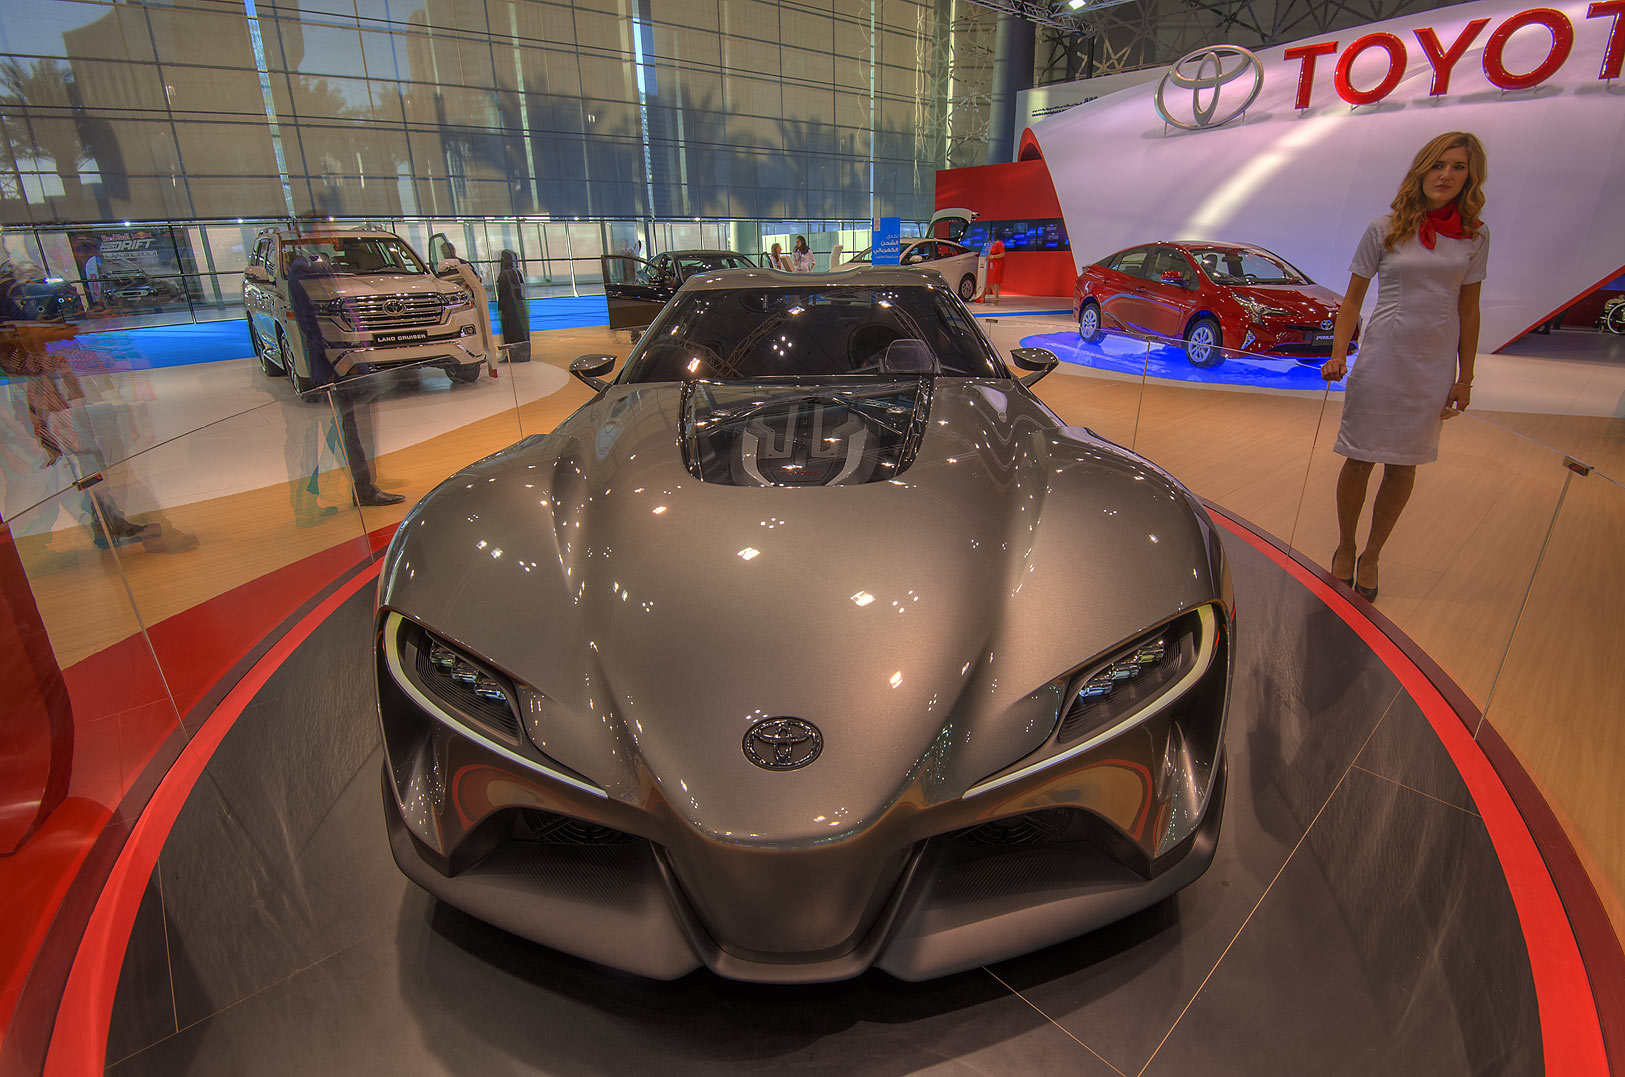 Silver Toyota car at a motor show in Exhibition...near City Center mall. Doha, Qatar